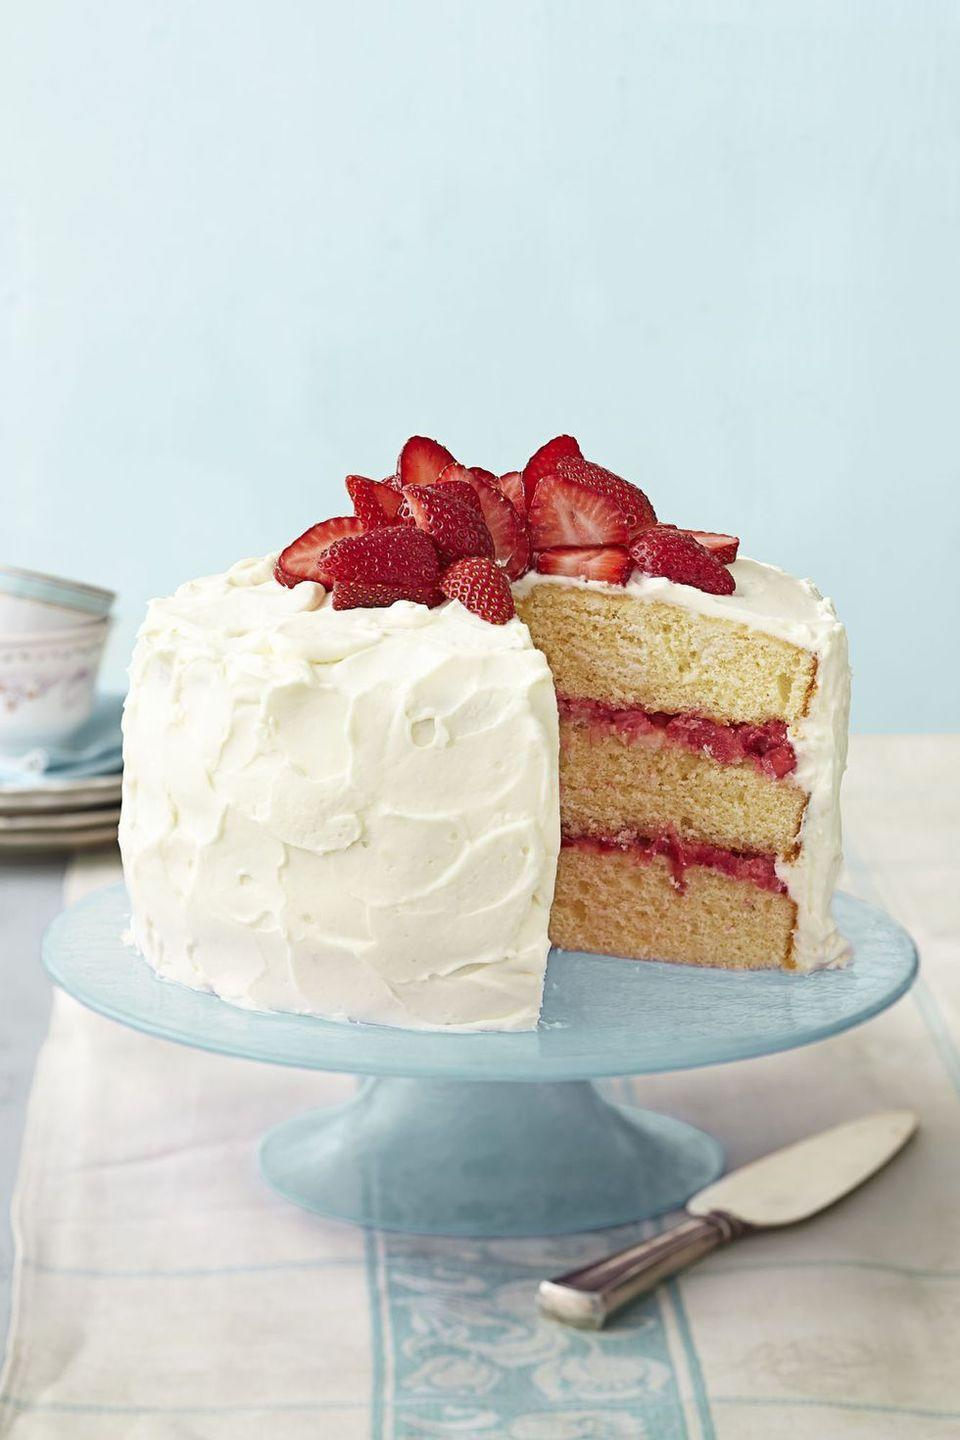 "<p>Even with sweet cream cheese frosting and light and fluffy vanilla cake, it's the fruity rhubarb compote that steals the show with this dessert. Top with some blueberries for a red, white, and blue twist.</p><p><em><a href=""https://www.goodhousekeeping.com/food-recipes/a15071/strawberry-rhubarb-layer-cake-recipe-ghk0414/"" rel=""nofollow noopener"" target=""_blank"" data-ylk=""slk:Get the recipe for Strawberry Rhubarb Layer Cake"" class=""link rapid-noclick-resp"">Get the recipe for Strawberry Rhubarb Layer Cake</a> <em><a href=""https://www.goodhousekeeping.com/food-recipes/a10121/cupcake-flag-berries-coconut-ghk0710/"" rel=""nofollow noopener"" target=""_blank"" data-ylk=""slk:»"" class=""link rapid-noclick-resp"">»</a></em></em></p>"